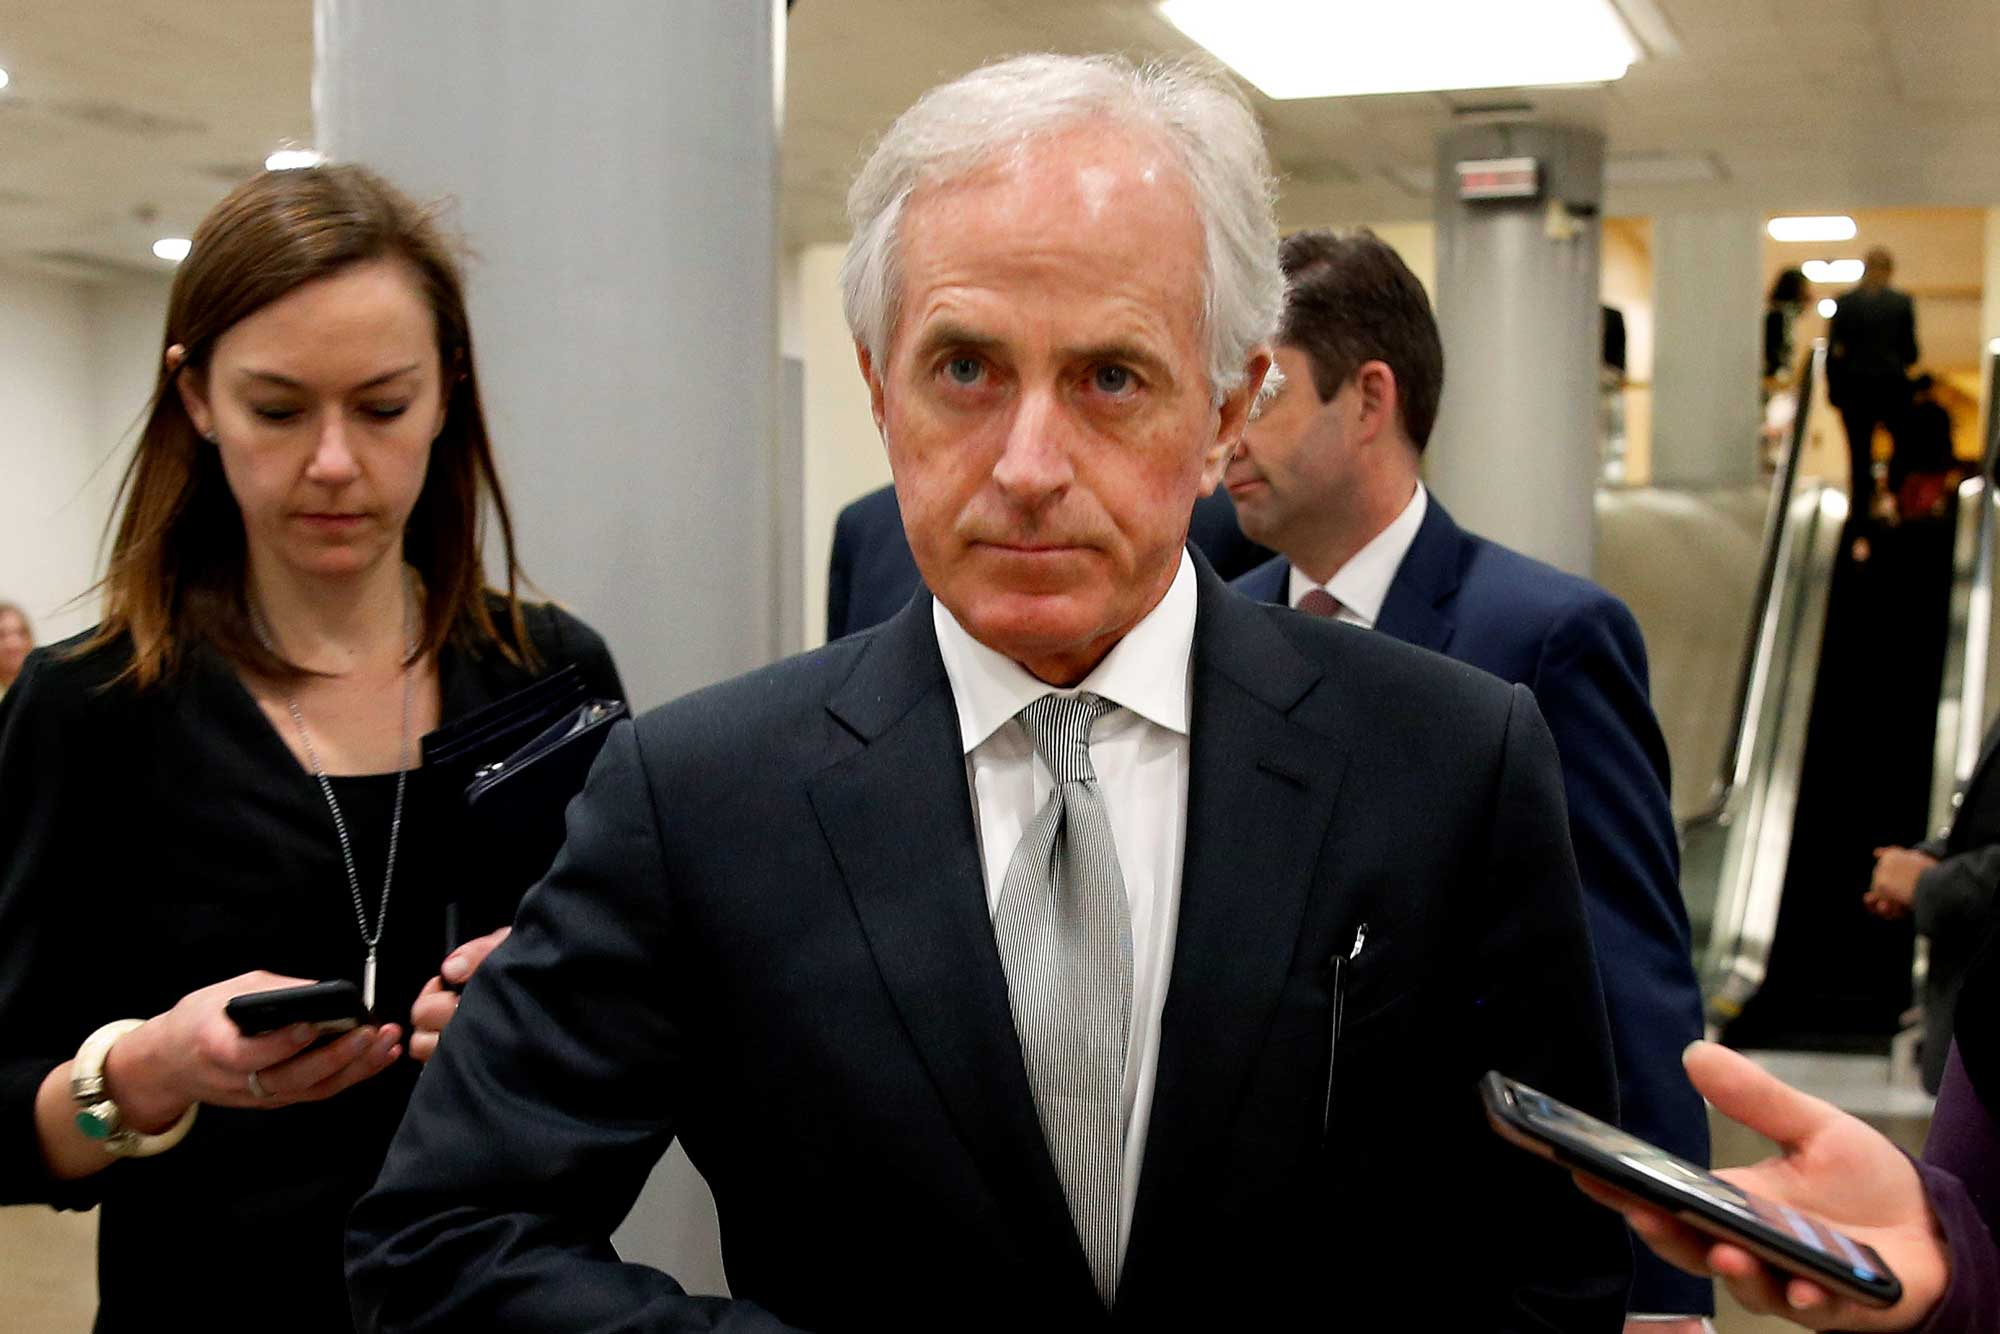 Trump and Corker could benefit Trump and Corker could benefit new photo